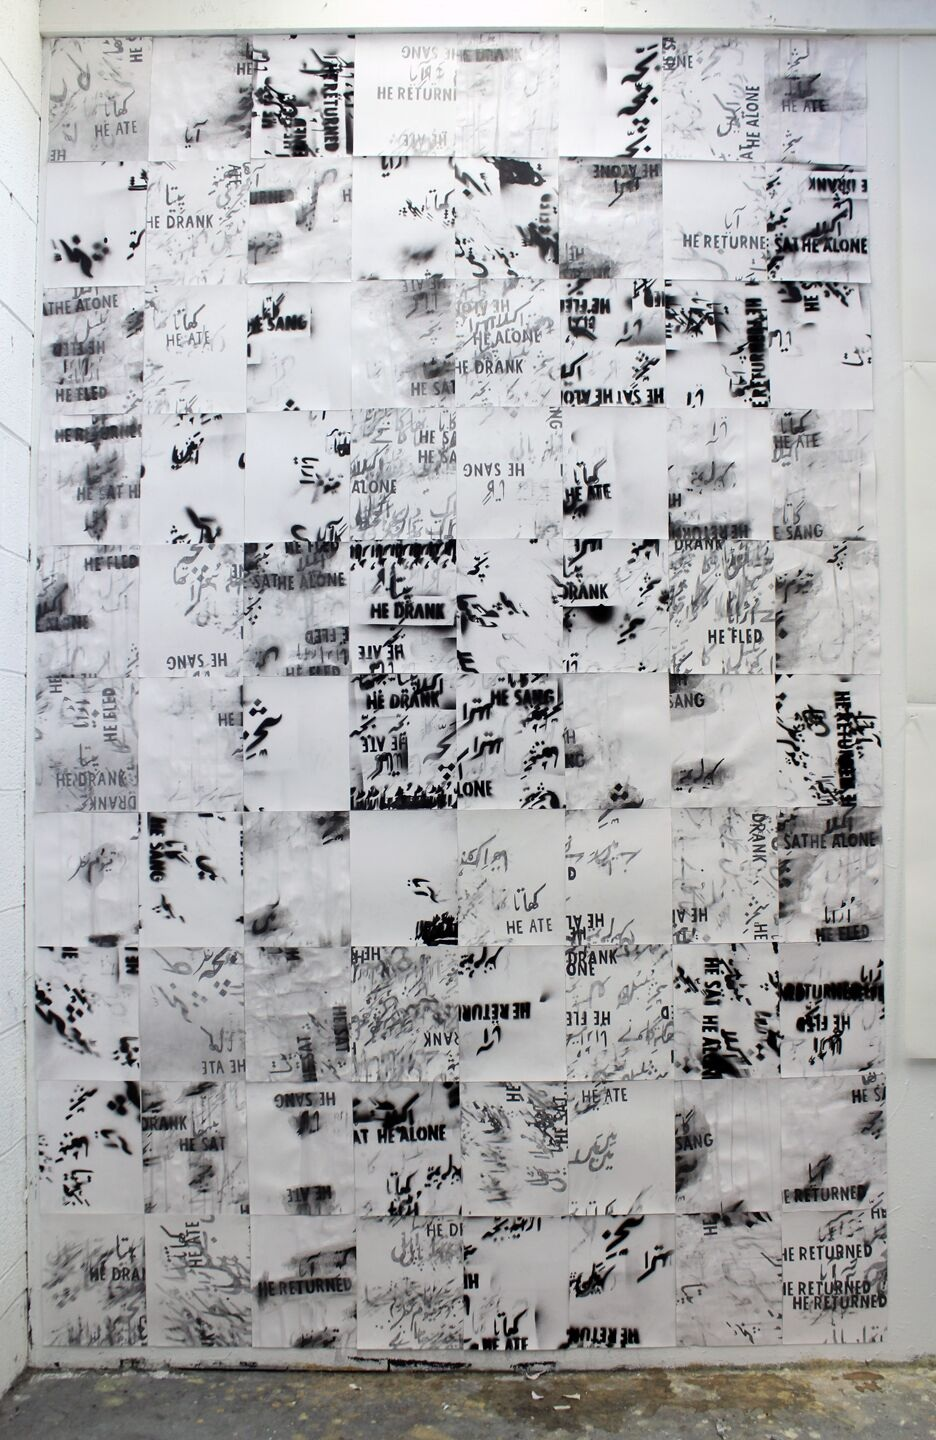 "Sa'dia Rehman,  Bul Bul ka Bacha, A Rhyme , 2016, graphite, black spray paint and ink on paper, 48""x120""."